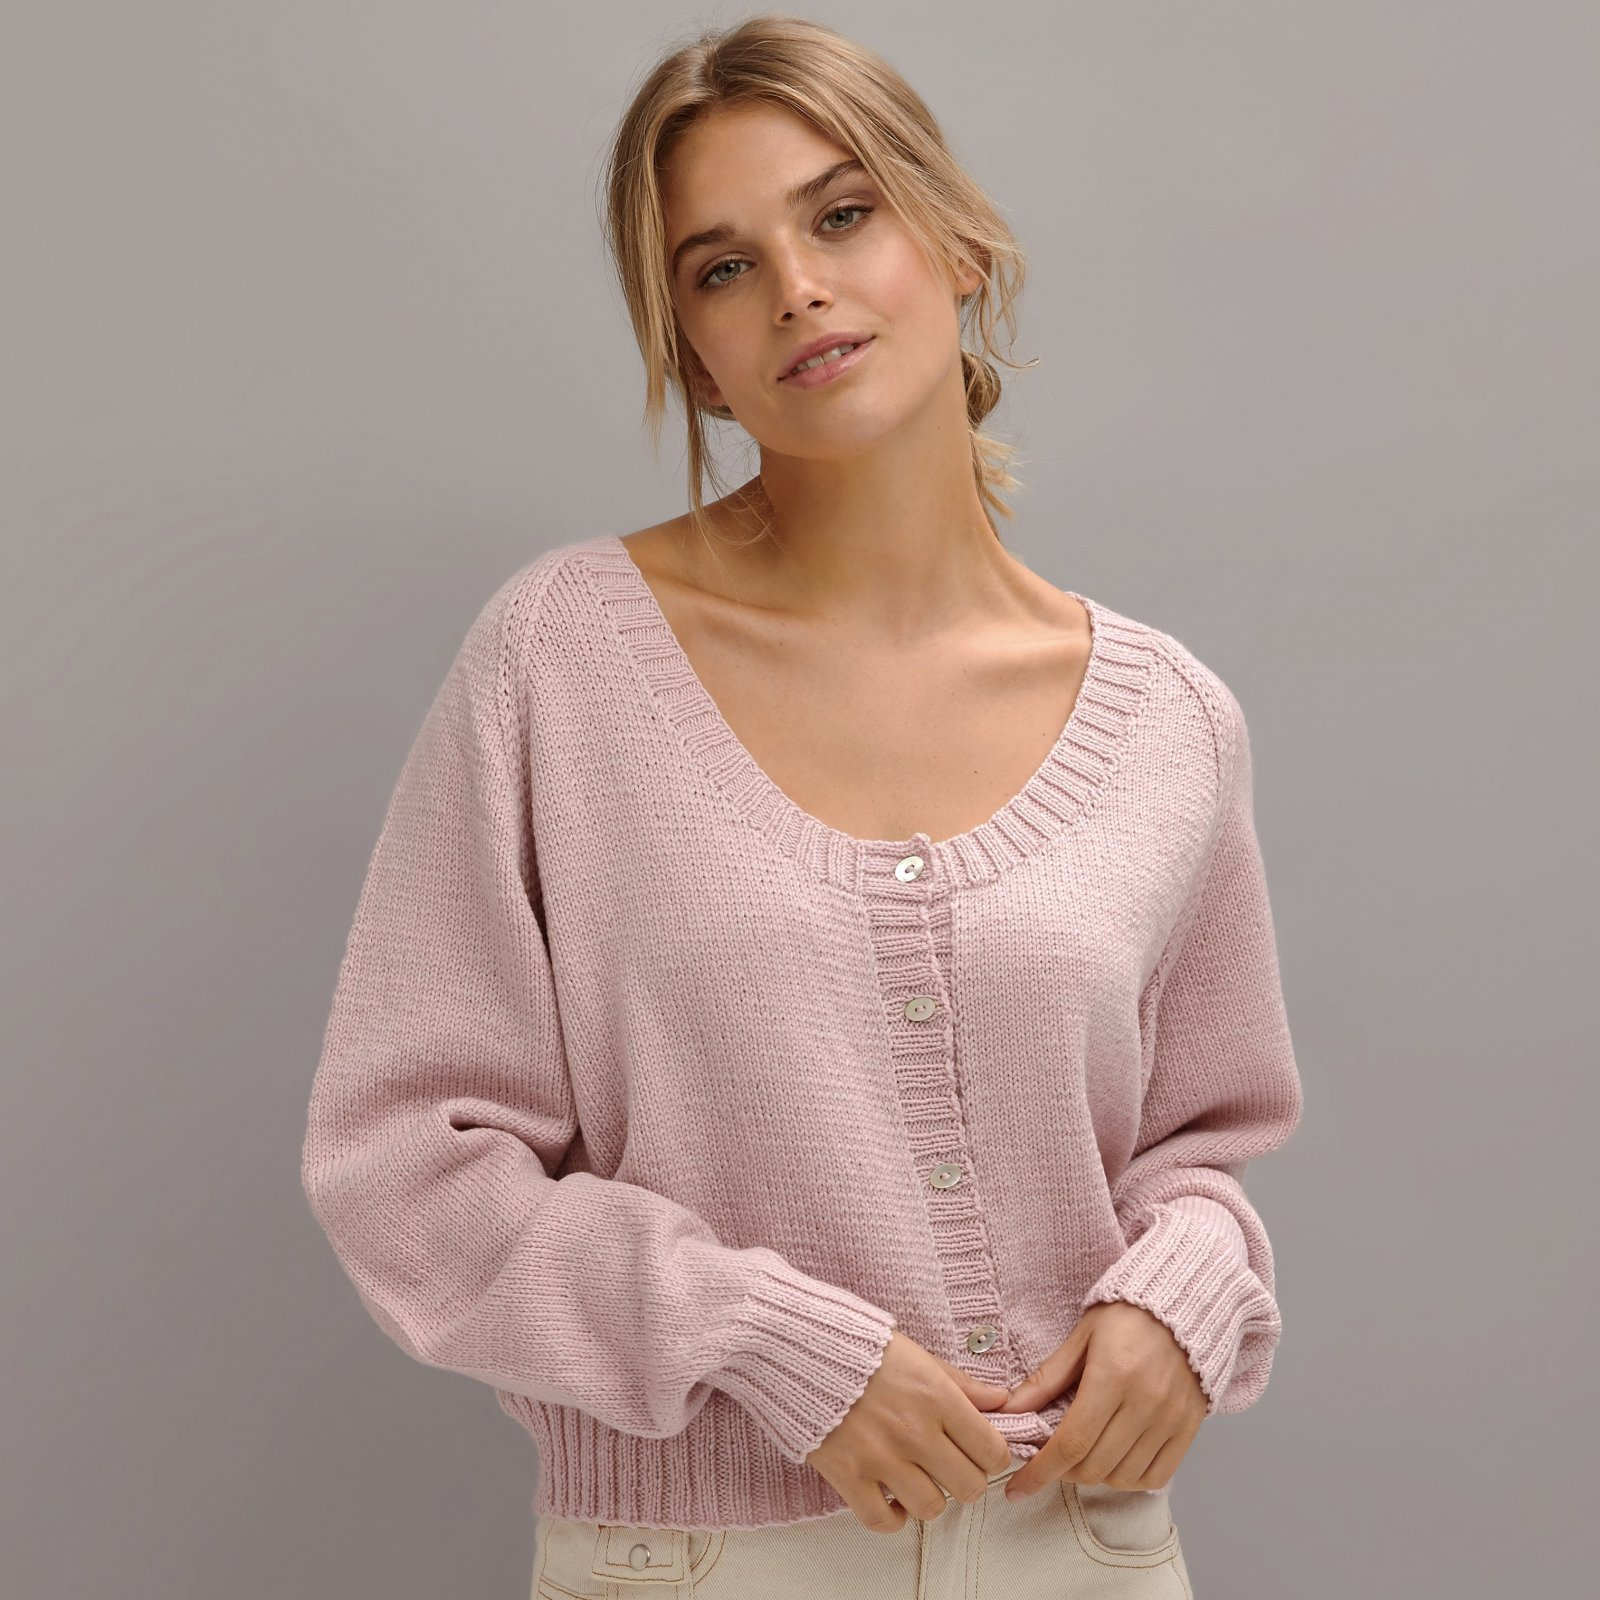 Bellissimo - GREER 813 - Sweater Pattern